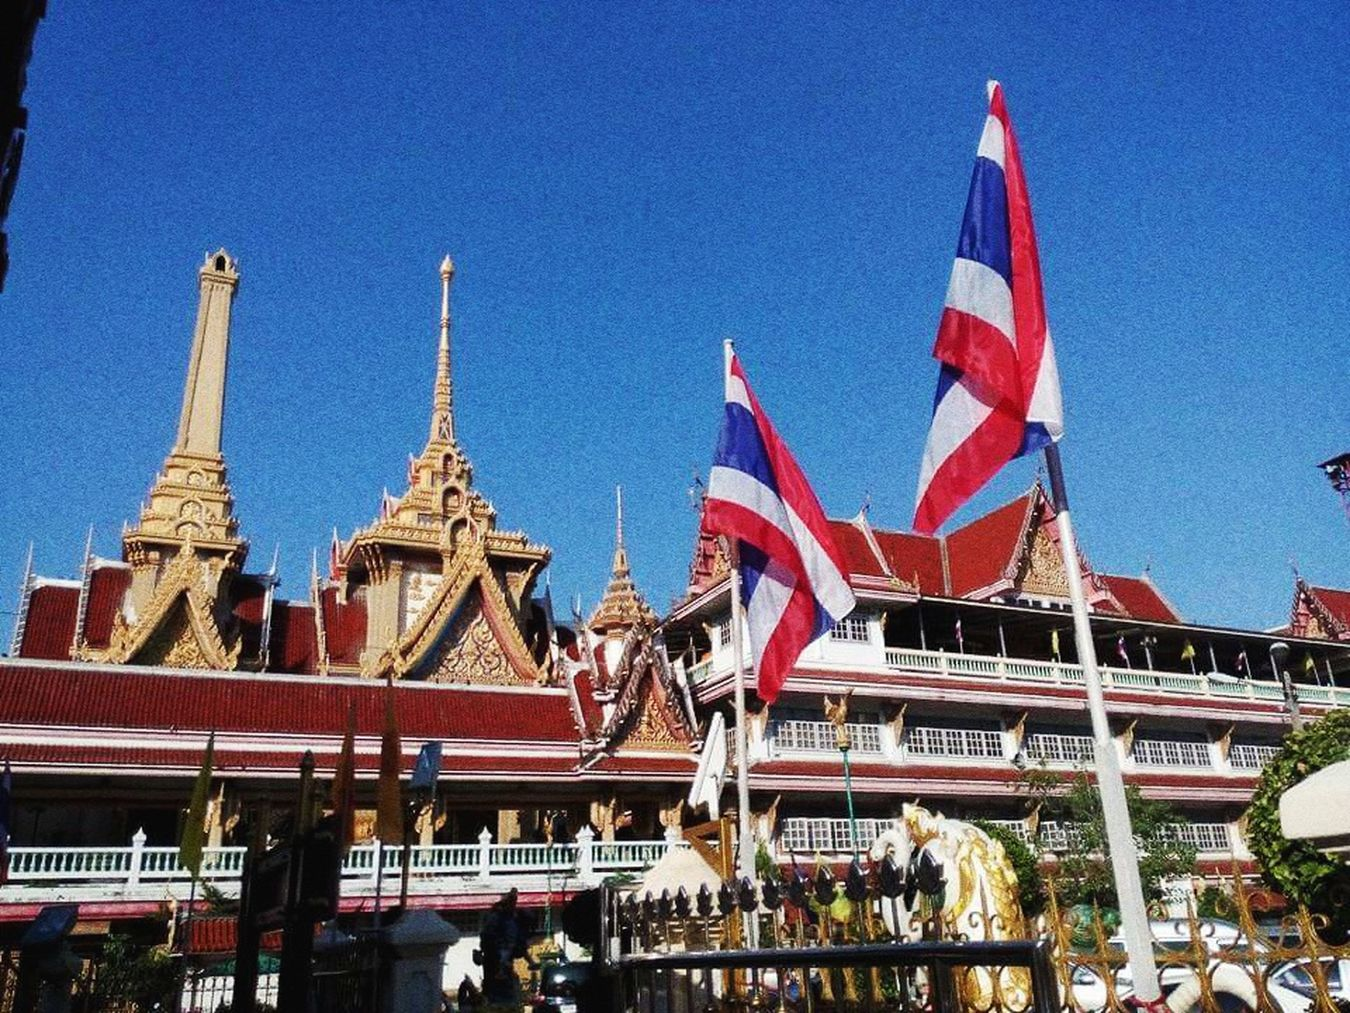 keep clam and belief Buddism Temple Taking Photos Hello World Thailand Happy People Butiful City